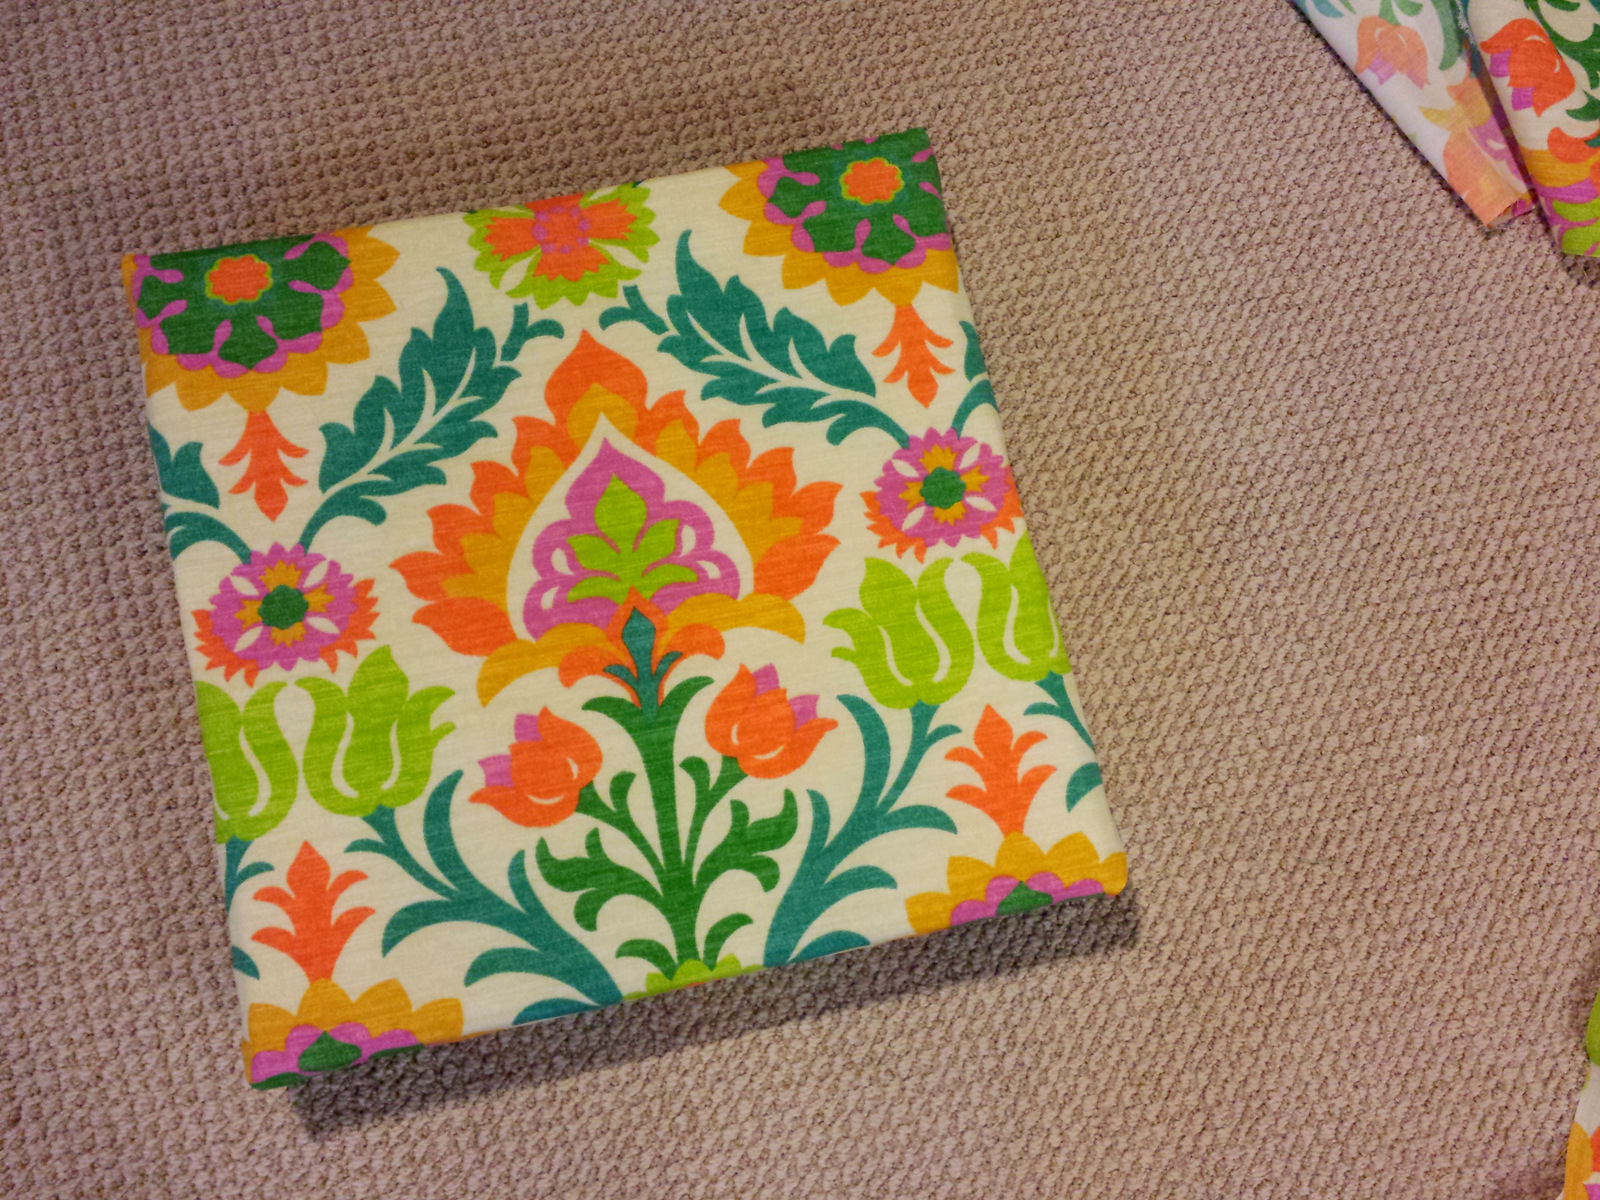 sewing patterns for patio chair cushions casters office chairs on hardwood floor diy no sew seat come along with chong cushion waverly santa maria mimosa fabric